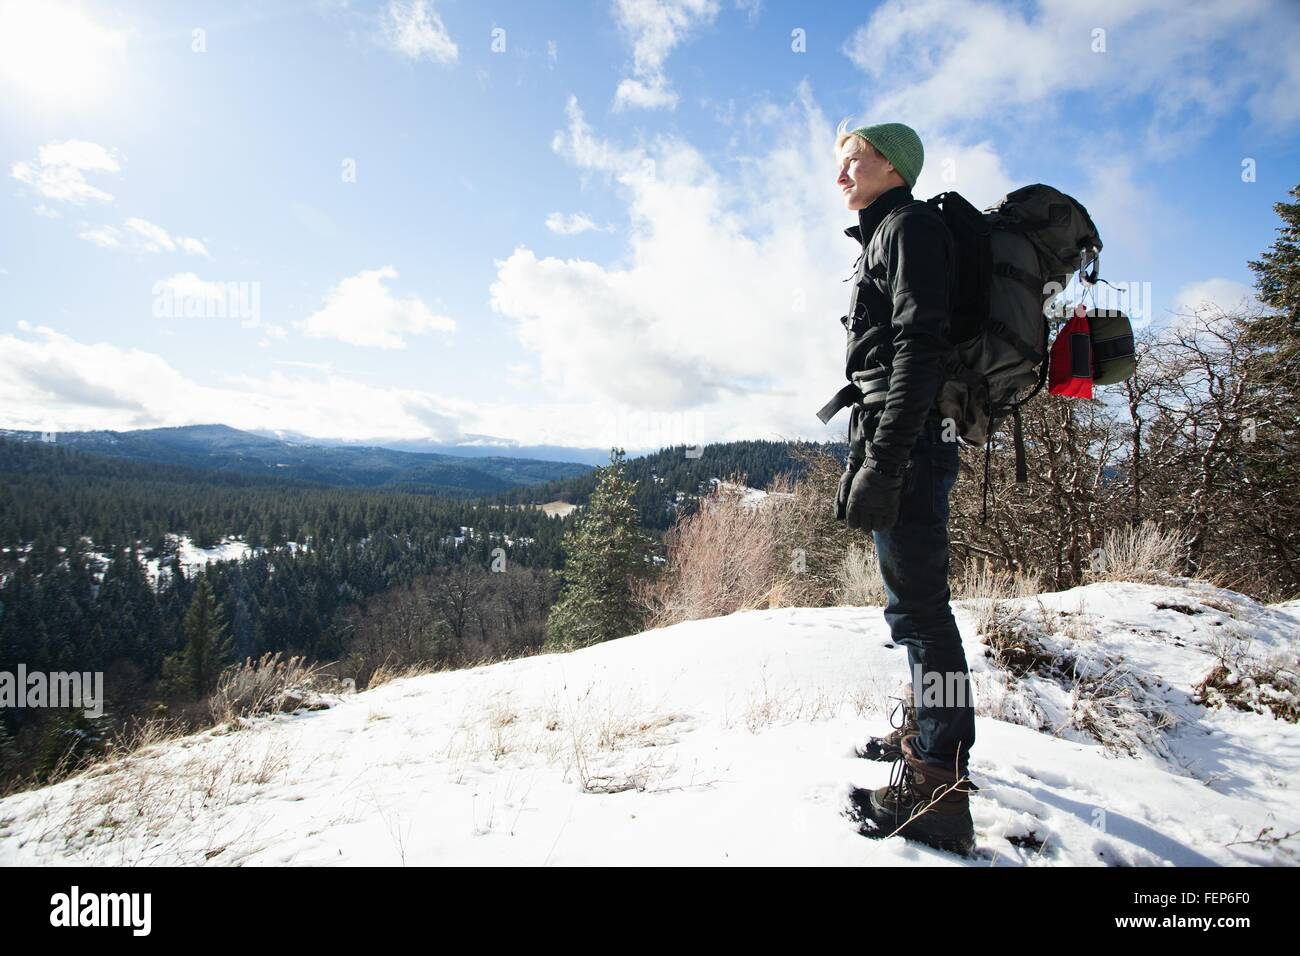 Young male hiker looking out from snow covered landscape, Ashland, Oregon, USA - Stock Image